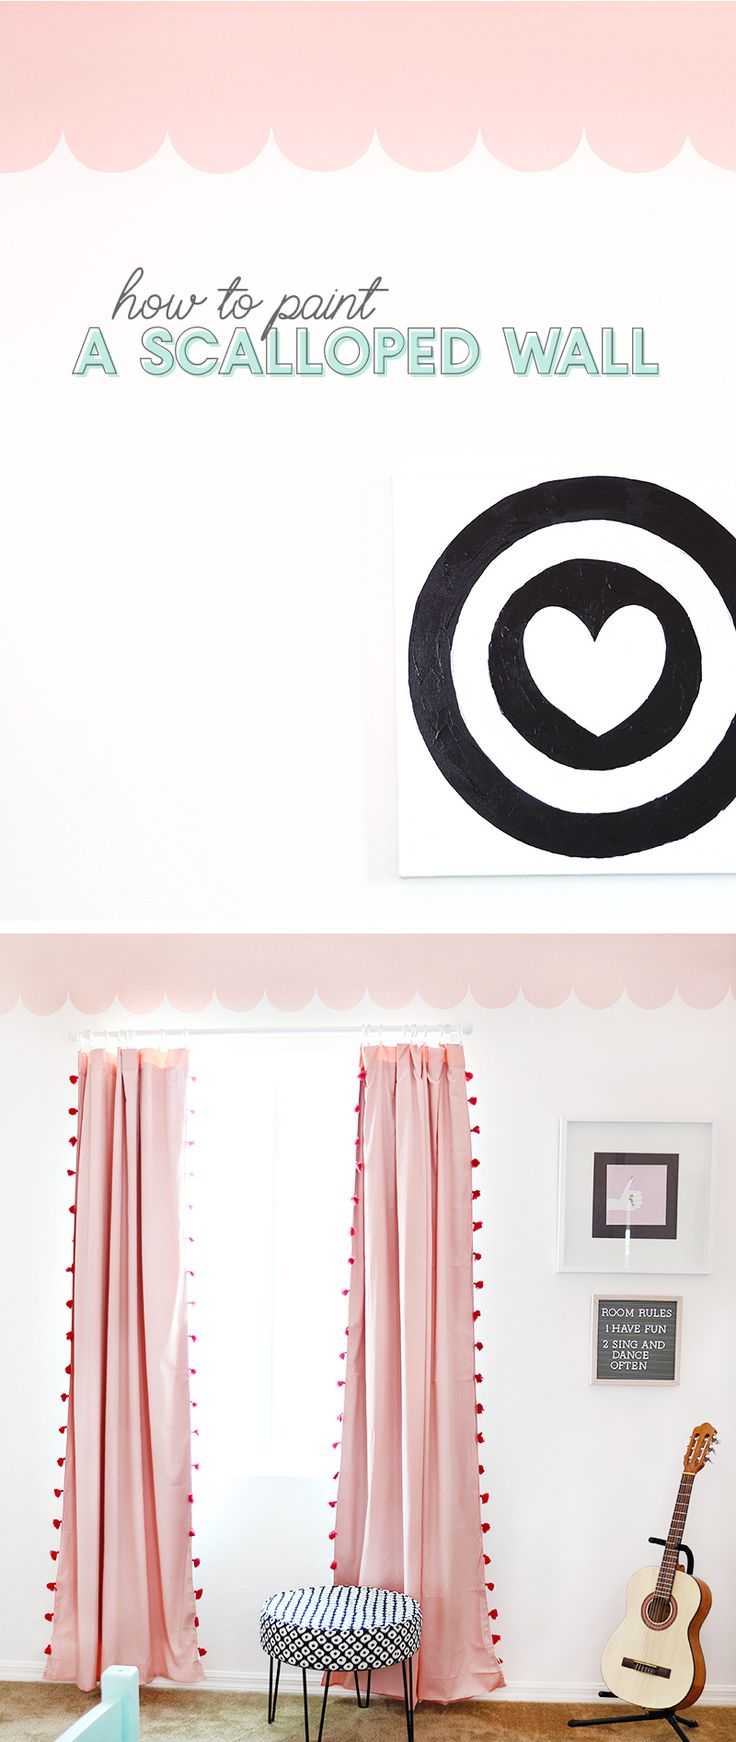 Learn how to paint a scalloped wall with Devine Color. This modern girl's bedroom makeover combines a sweet pink DIY scalloped wall treatment with graphic black and white accents for a look that is fresh, girly, and fun. #DevineTargetStyle #ad